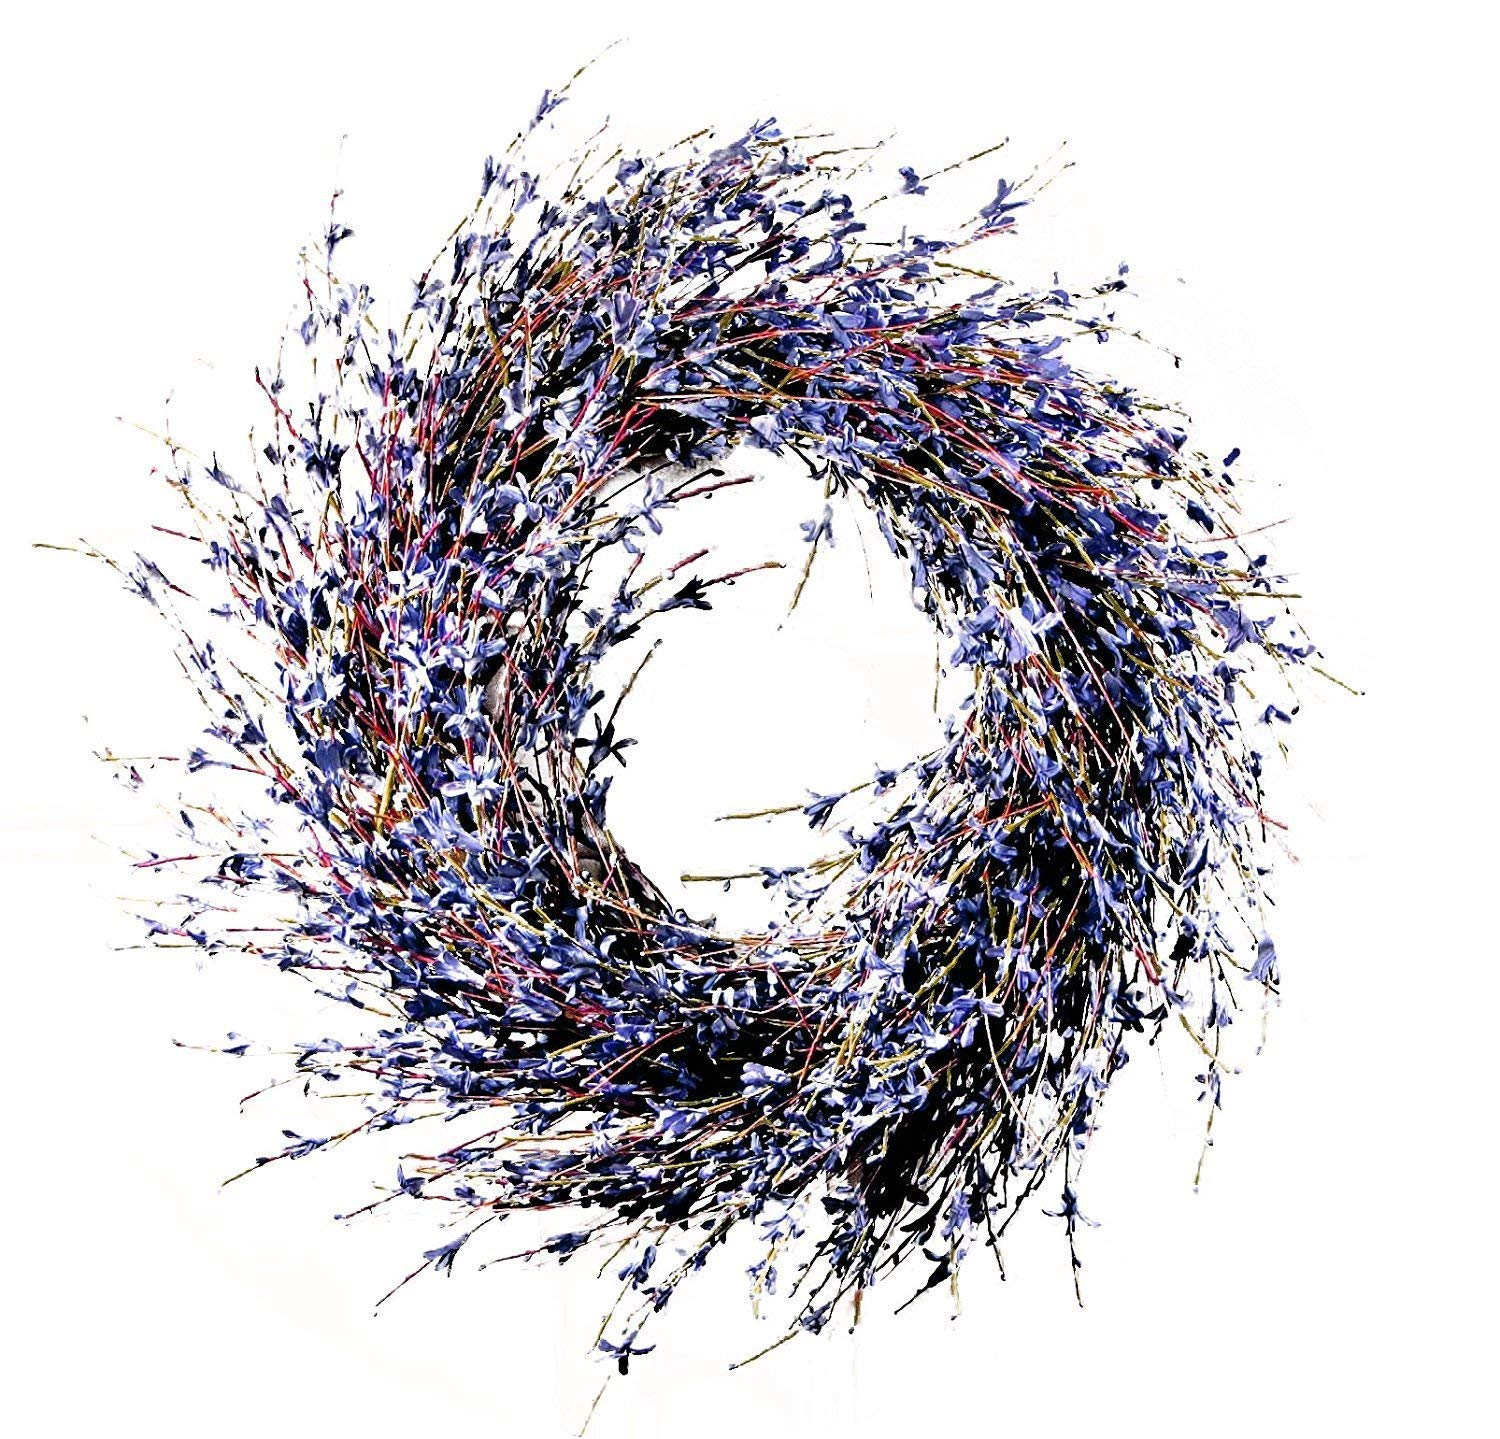 Charm-Chic-Faux-Dried-Lavender-Floral-Door-Wreath-Natural-for-Fall-Front-Door-or-Indoor-Home-Decor